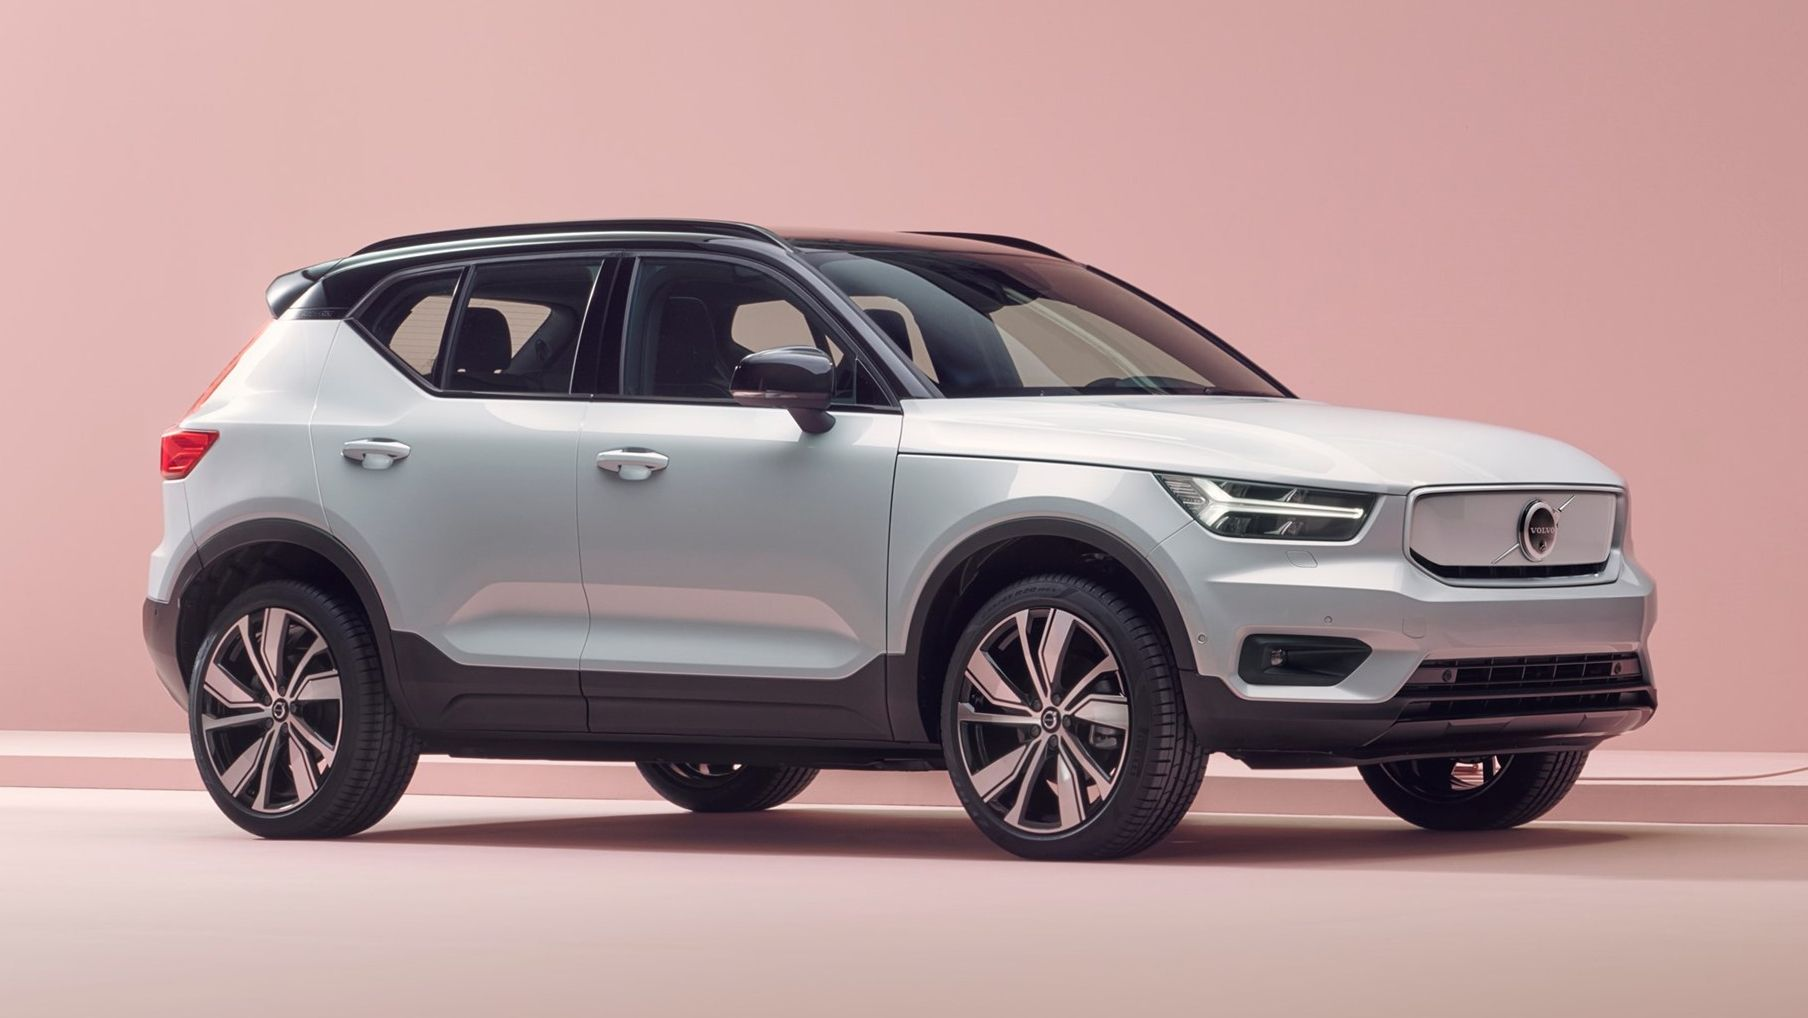 2020 Volvo Xc40 Recharge Revealed With Miles Of Range Volvo Electric Crossover Volvo Xc